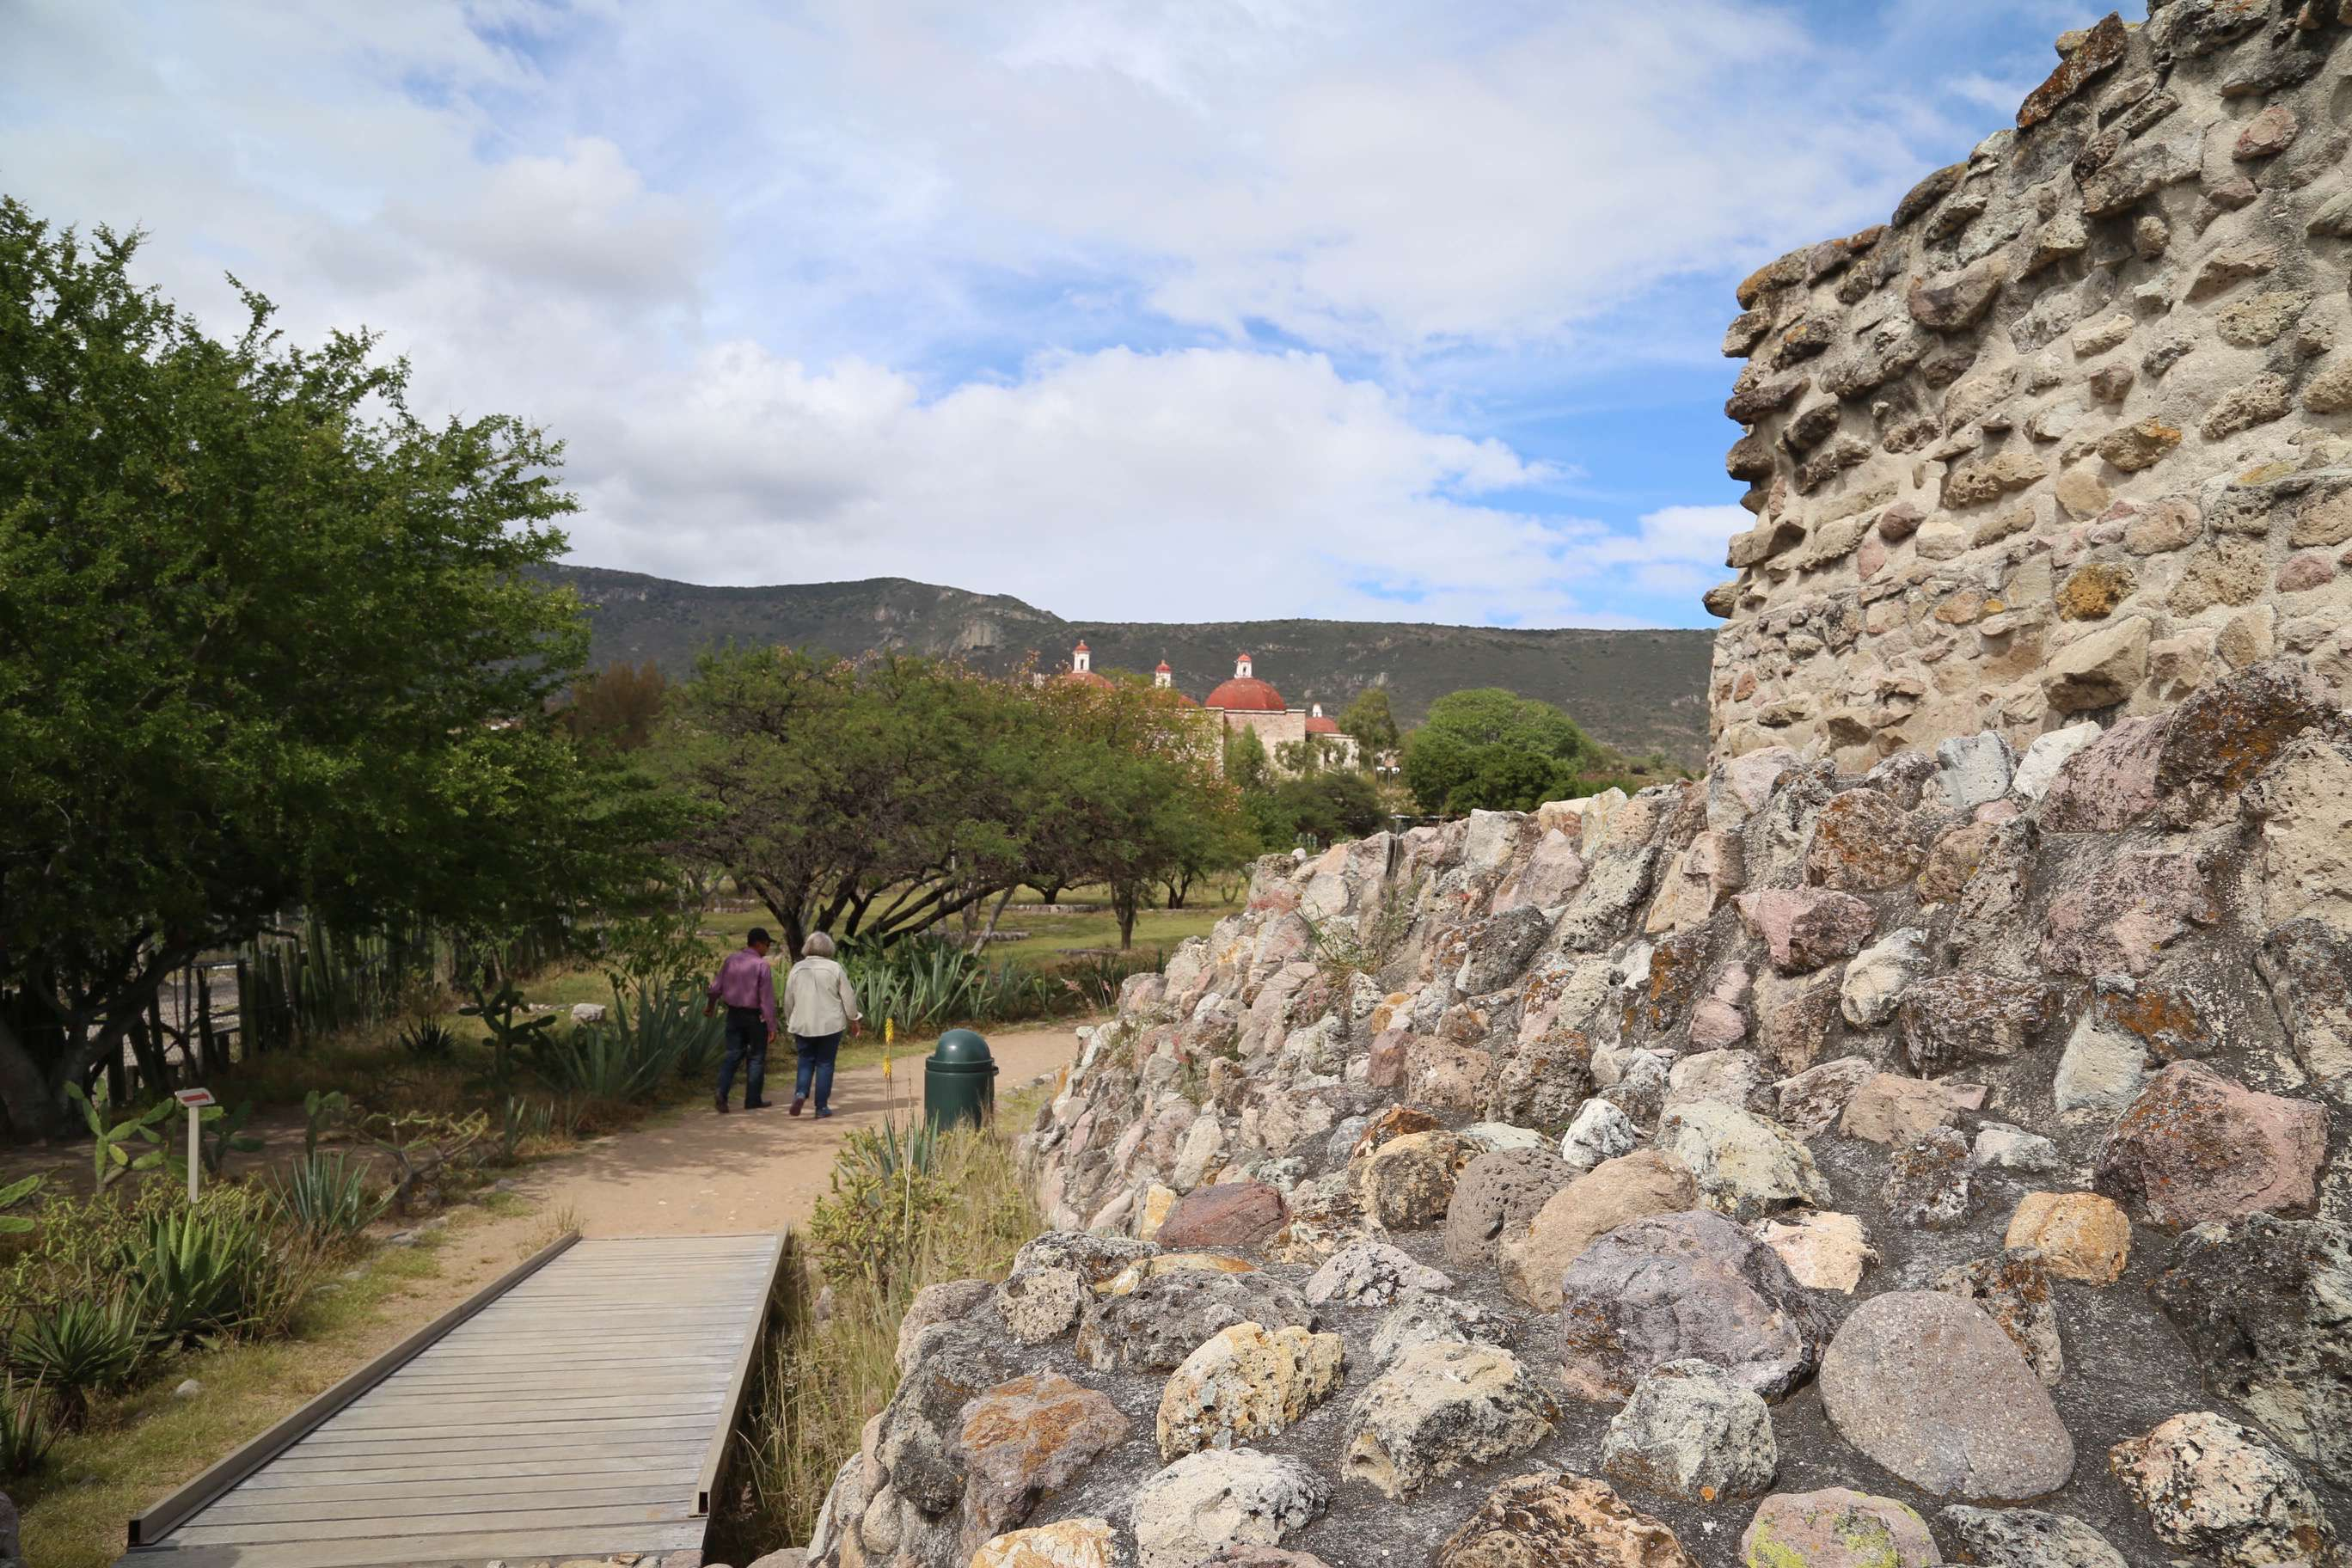 The San Pablo Apostol Catholic church, background, is built in large part with the stones taken from the temples at Mitla by Spanish colonists.